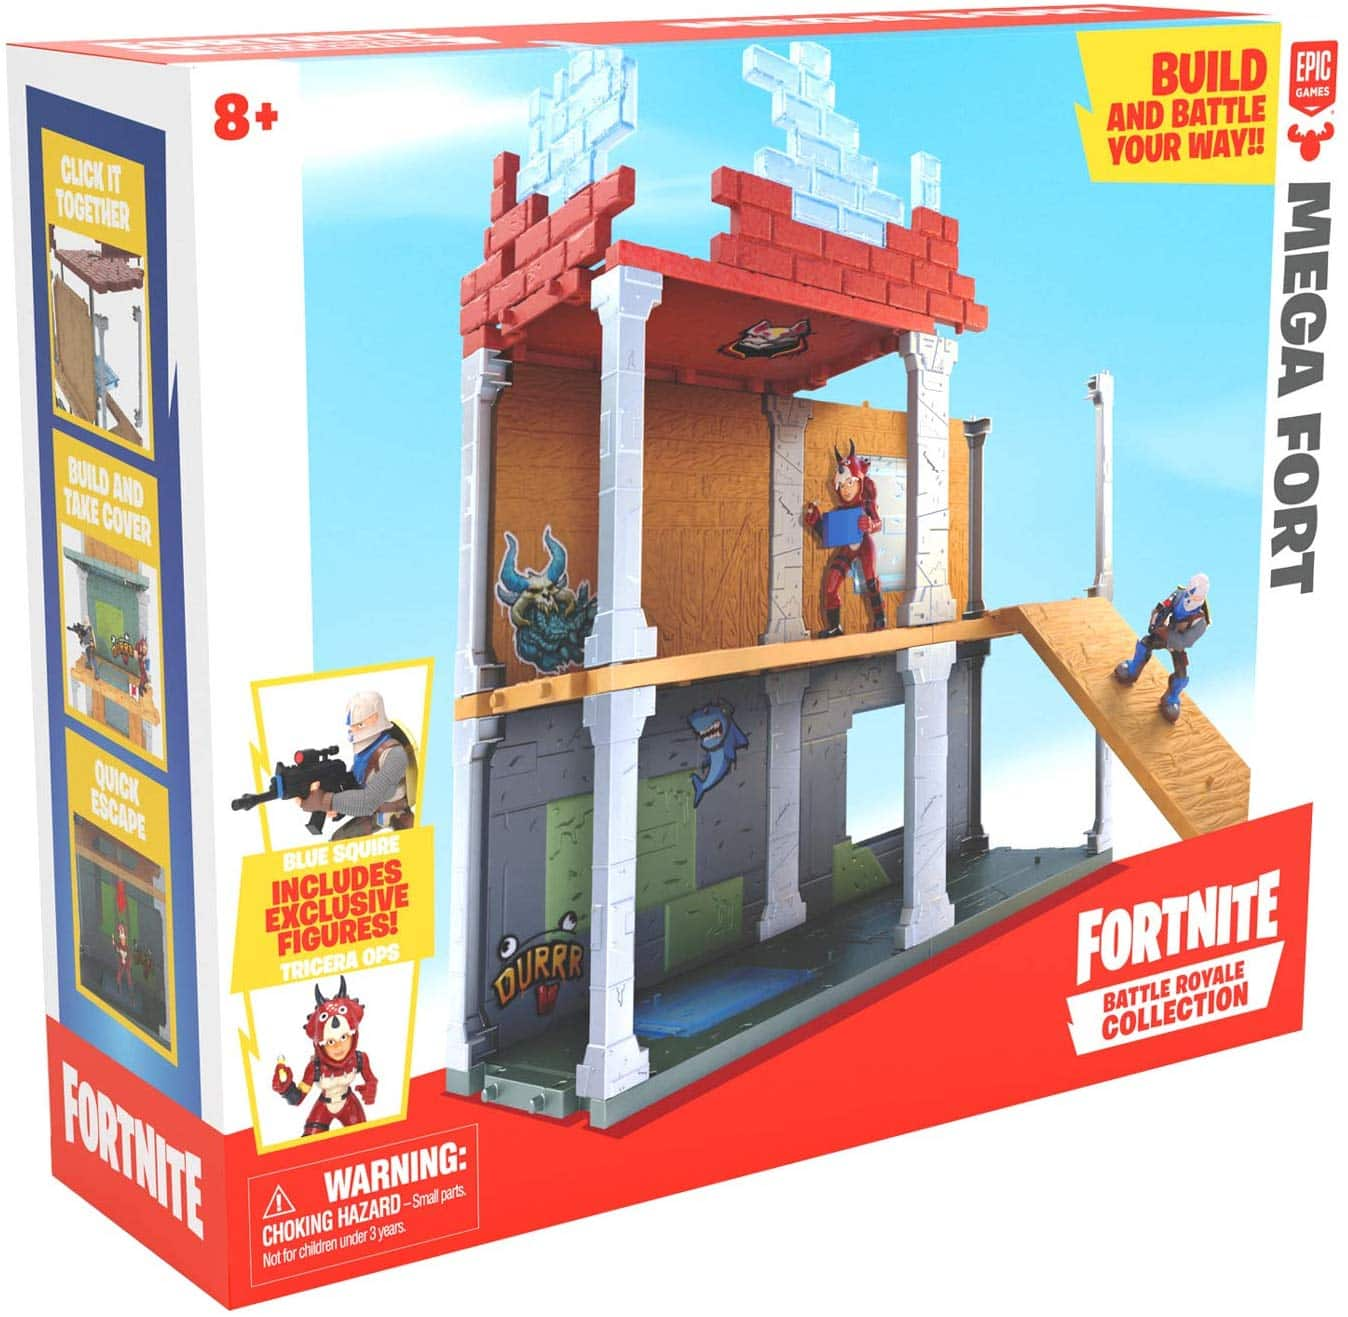 Save up to 50% on select Treasure X, Fortnite toys and more $5